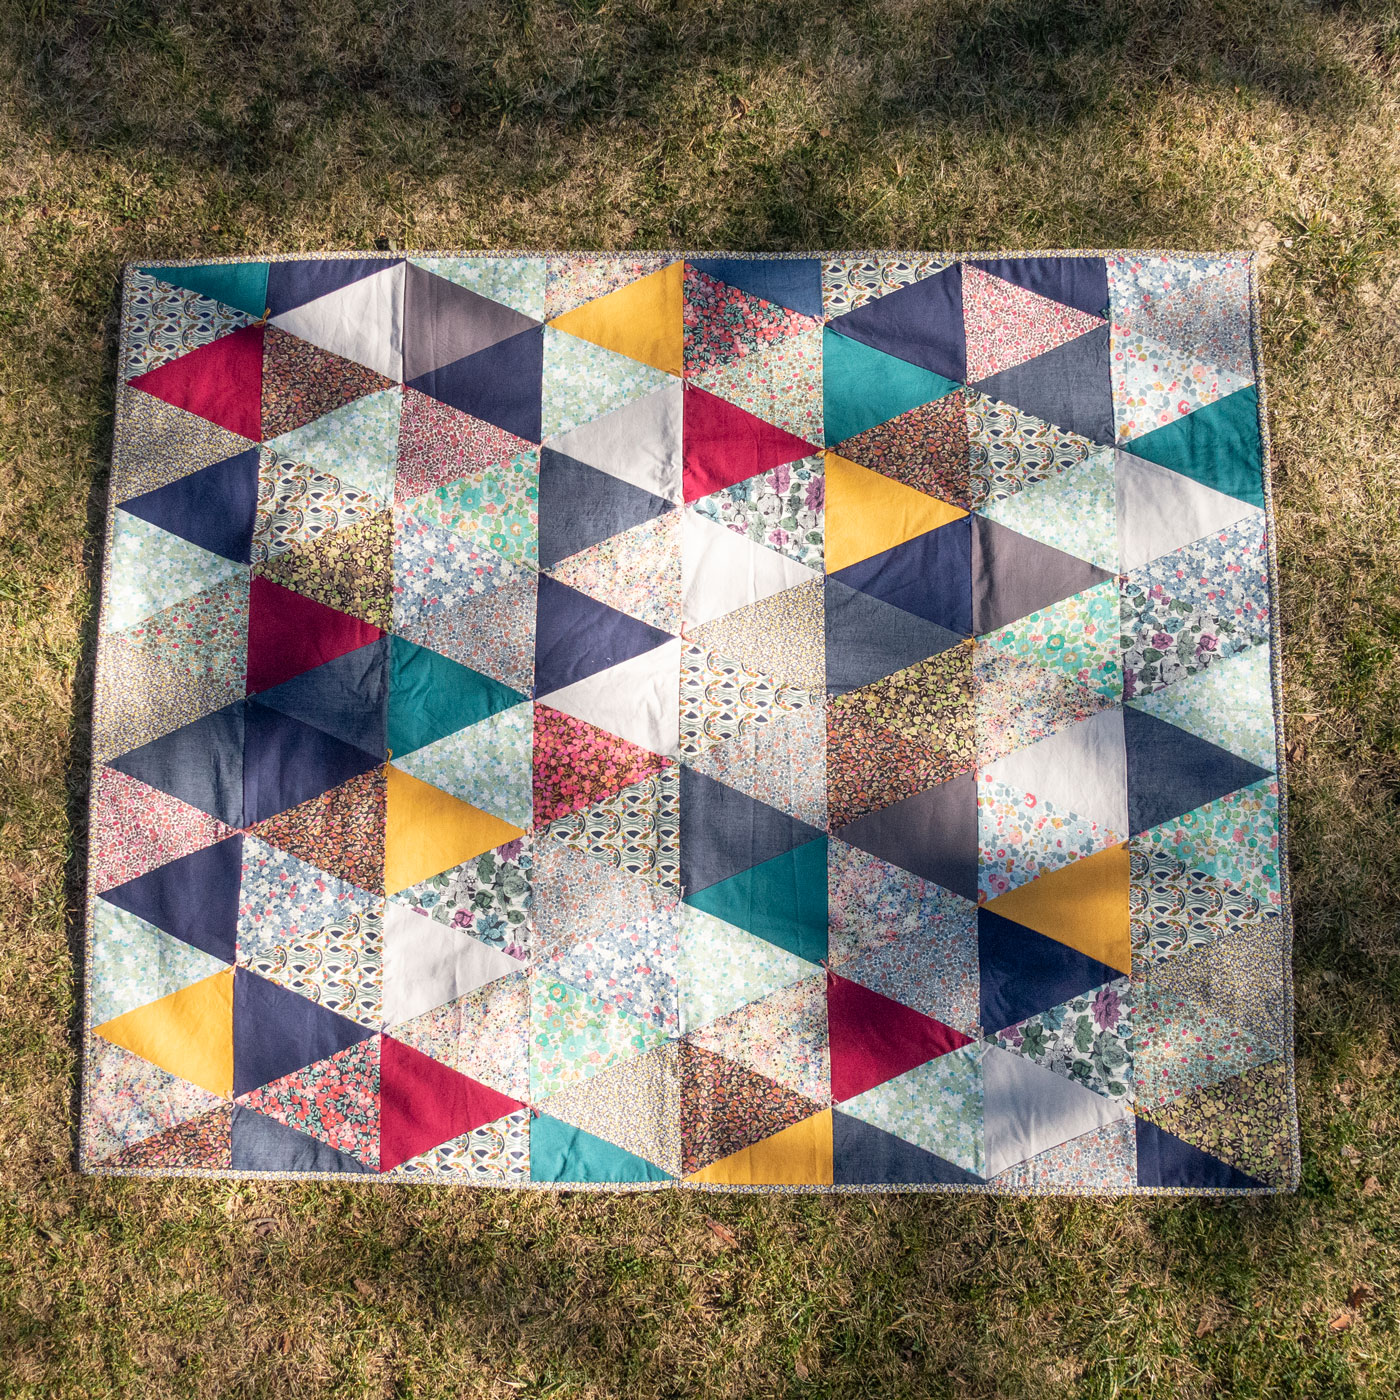 Quilty - This guy is a great little quilt for popping over your knees to keep warm. Lined with wool batting and decorated with vintage fabrics it looks at home in any situation. This is a personal favourite of mine!